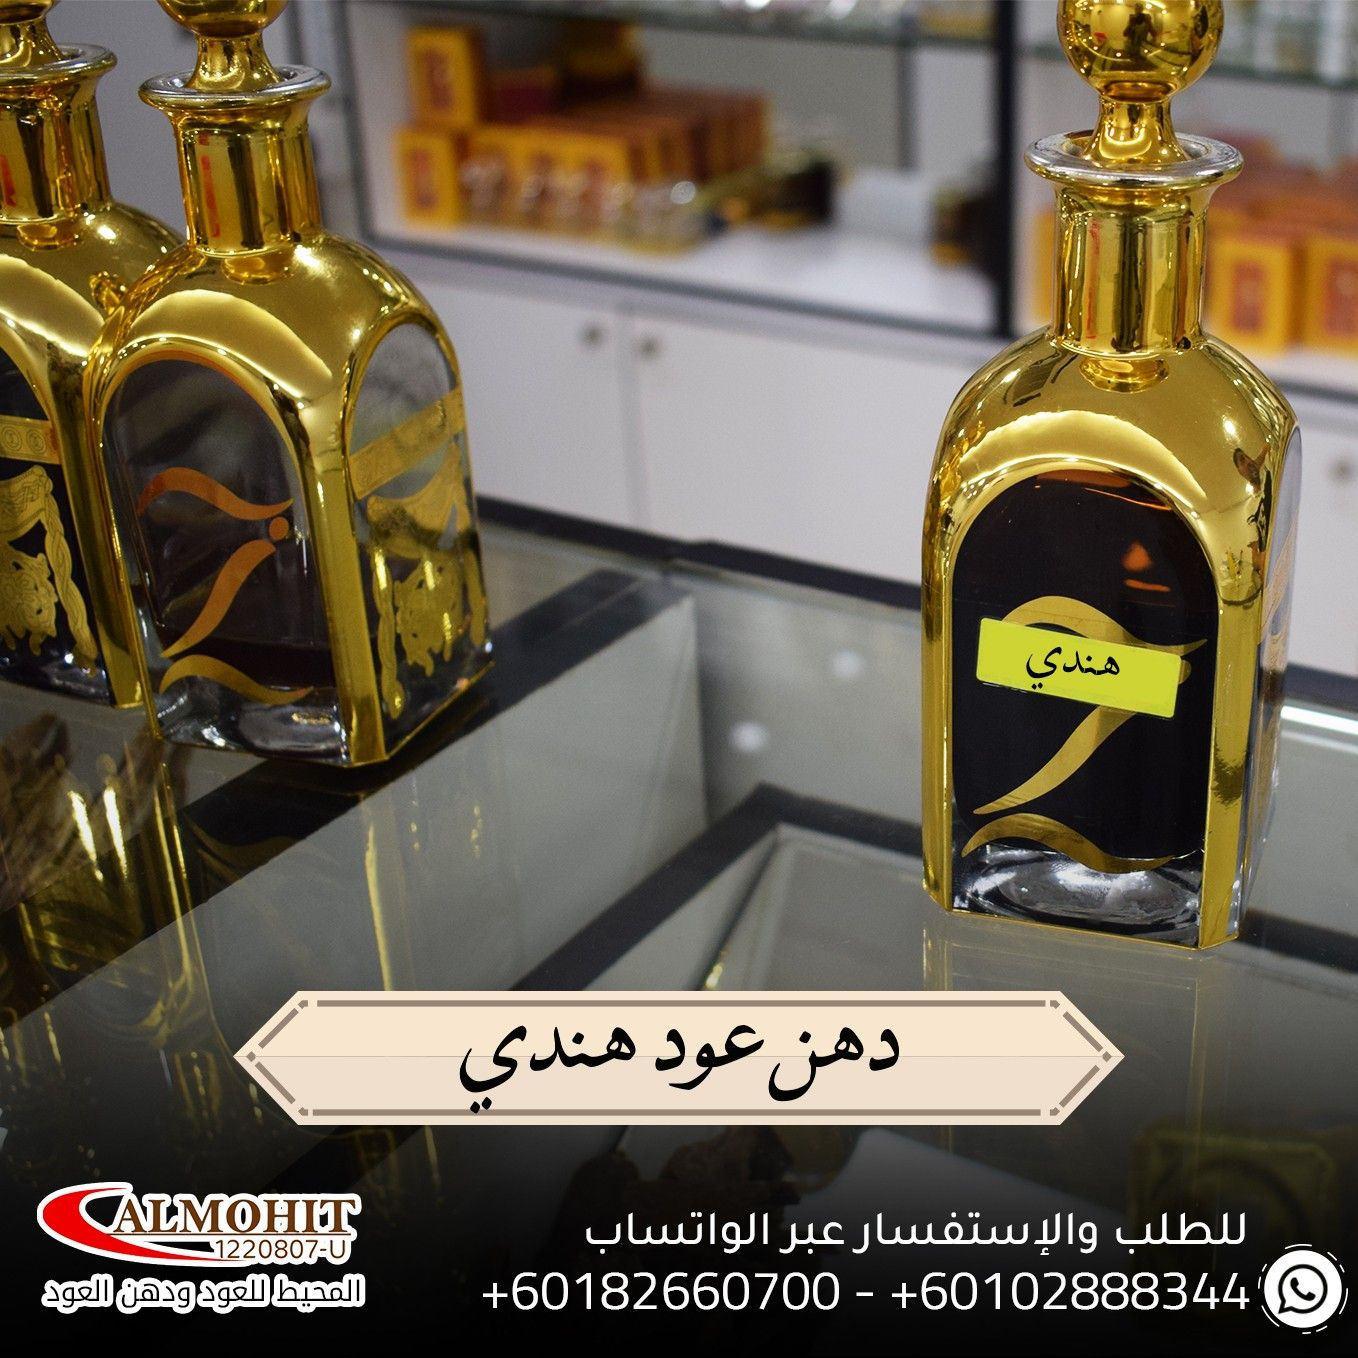 دهن عود هندي Popcorn Maker Kitchen Appliances Perfume